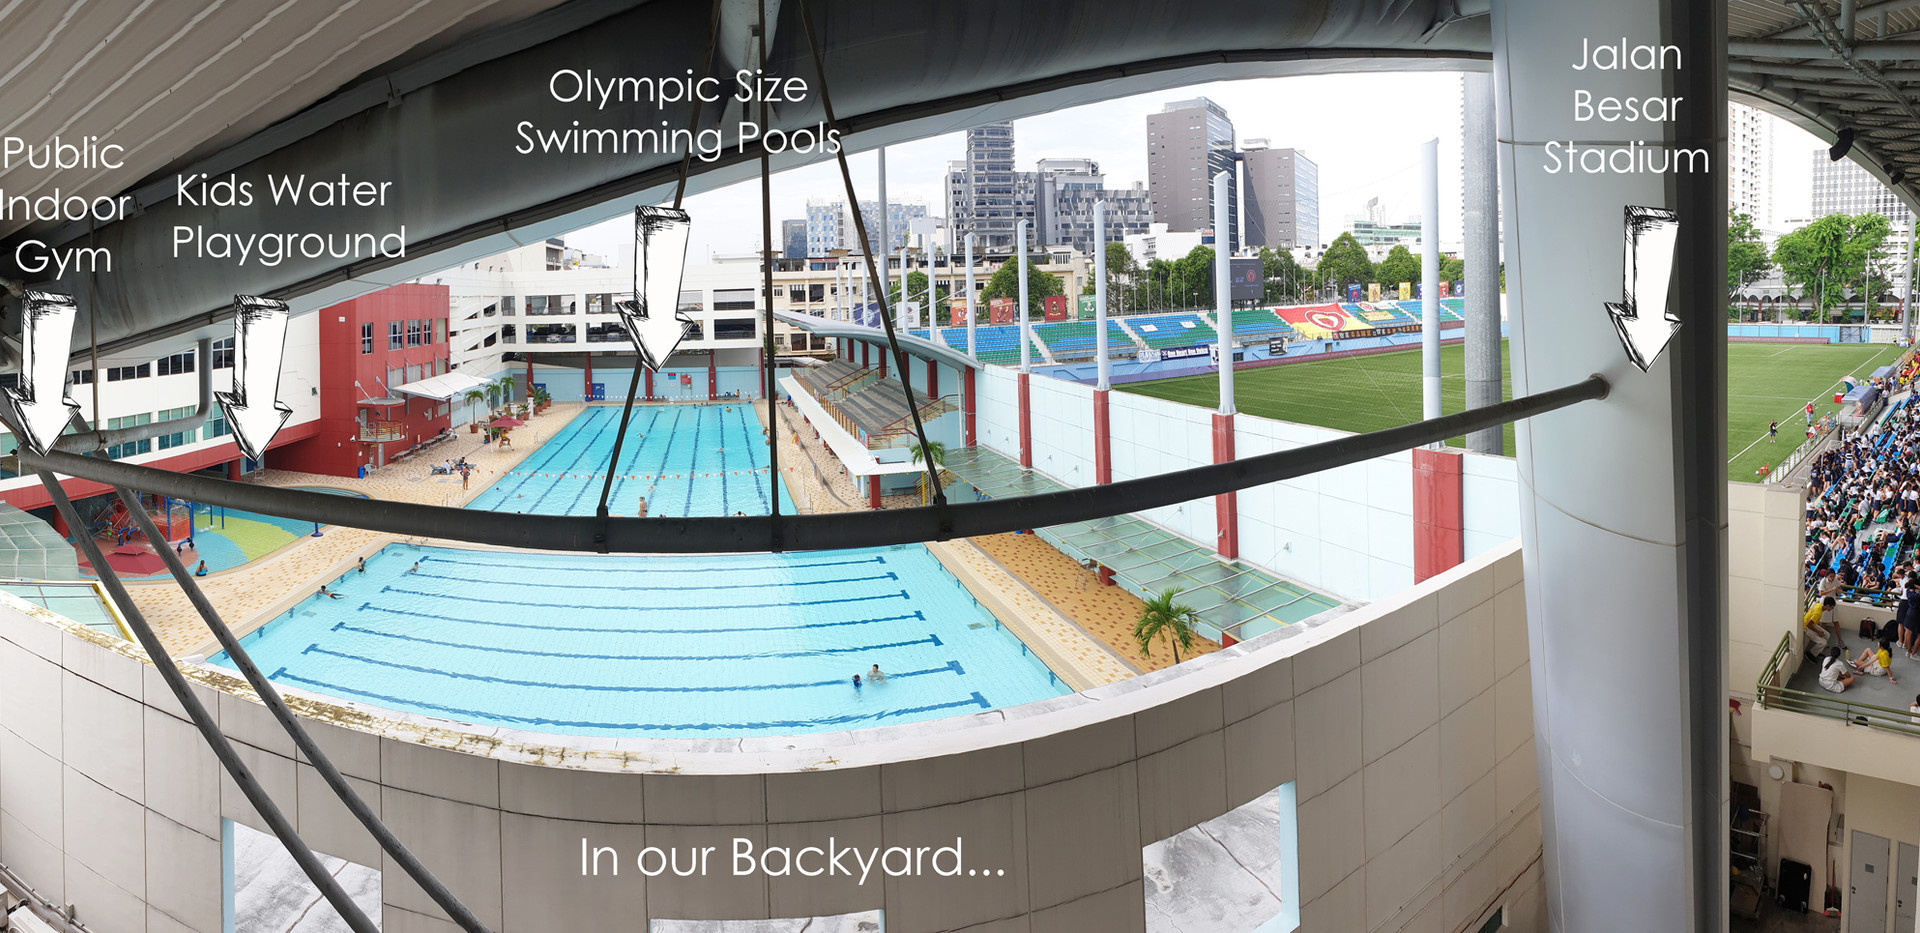 Swimming Pool & Stadium.jpg